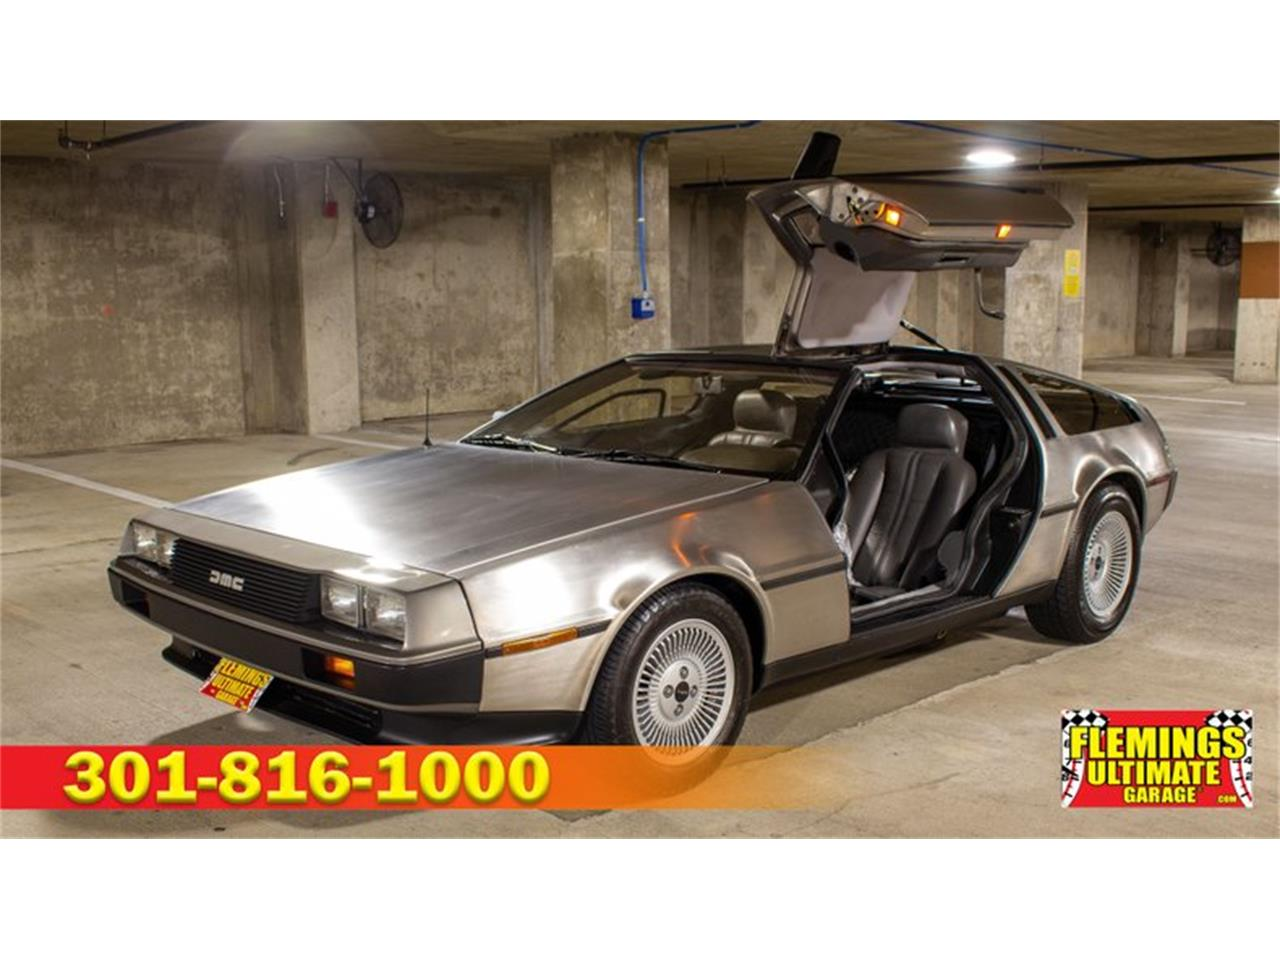 Large Picture of '81 DMC-12 Offered by Flemings Ultimate Garage - QZ9U